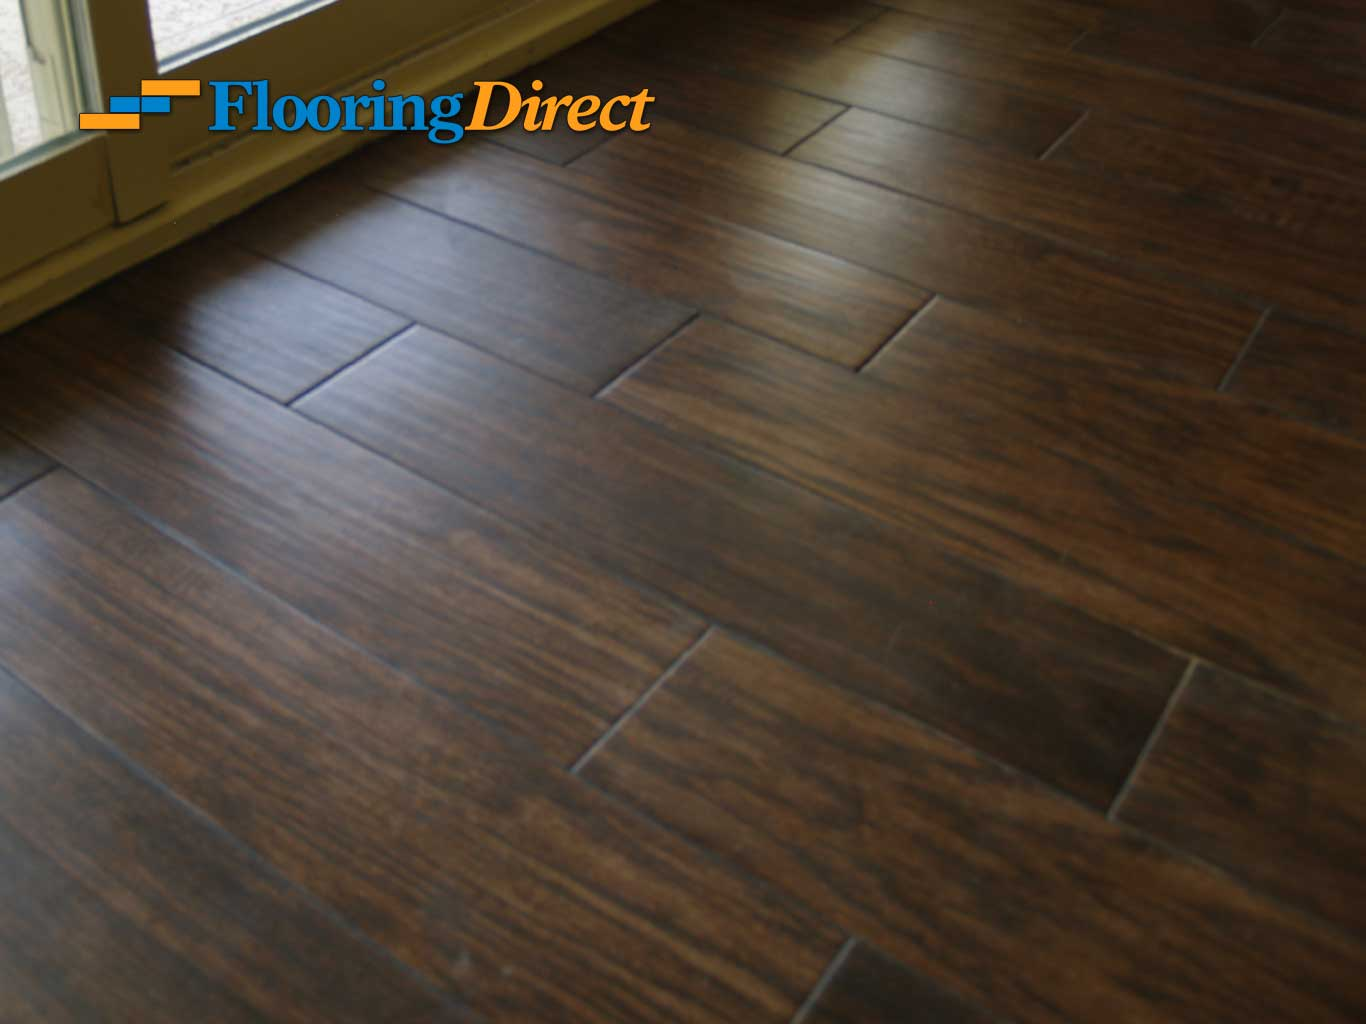 Vinyl flooring looks like ceramic tile wood floors for Carpet and vinyl flooring